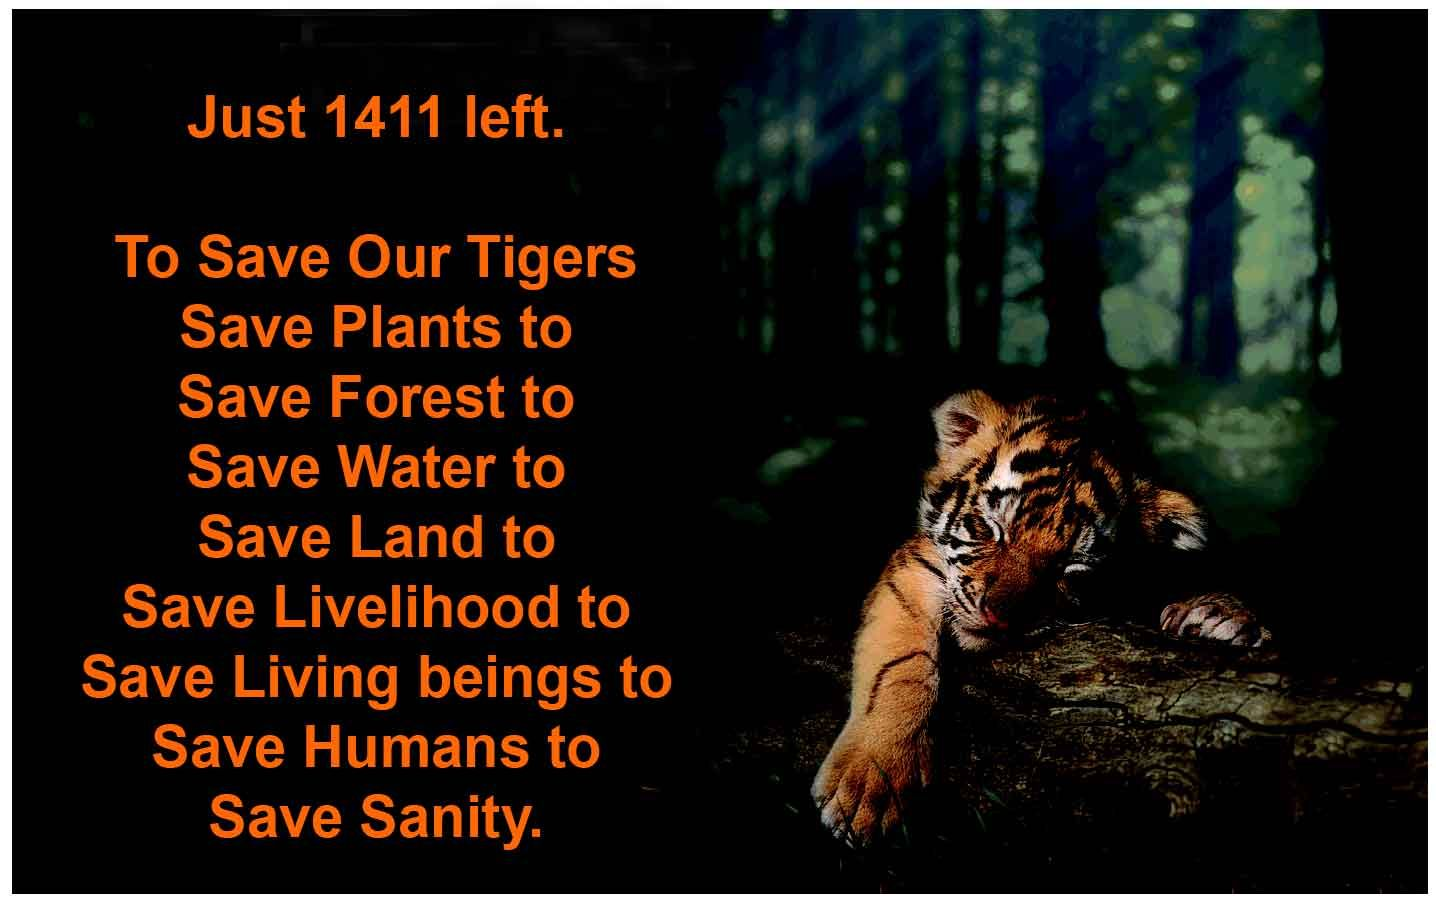 to save our tigers jpg times tiger inspirational quotes days wildlife and nature trail tour to corbett national park in uttarakhand